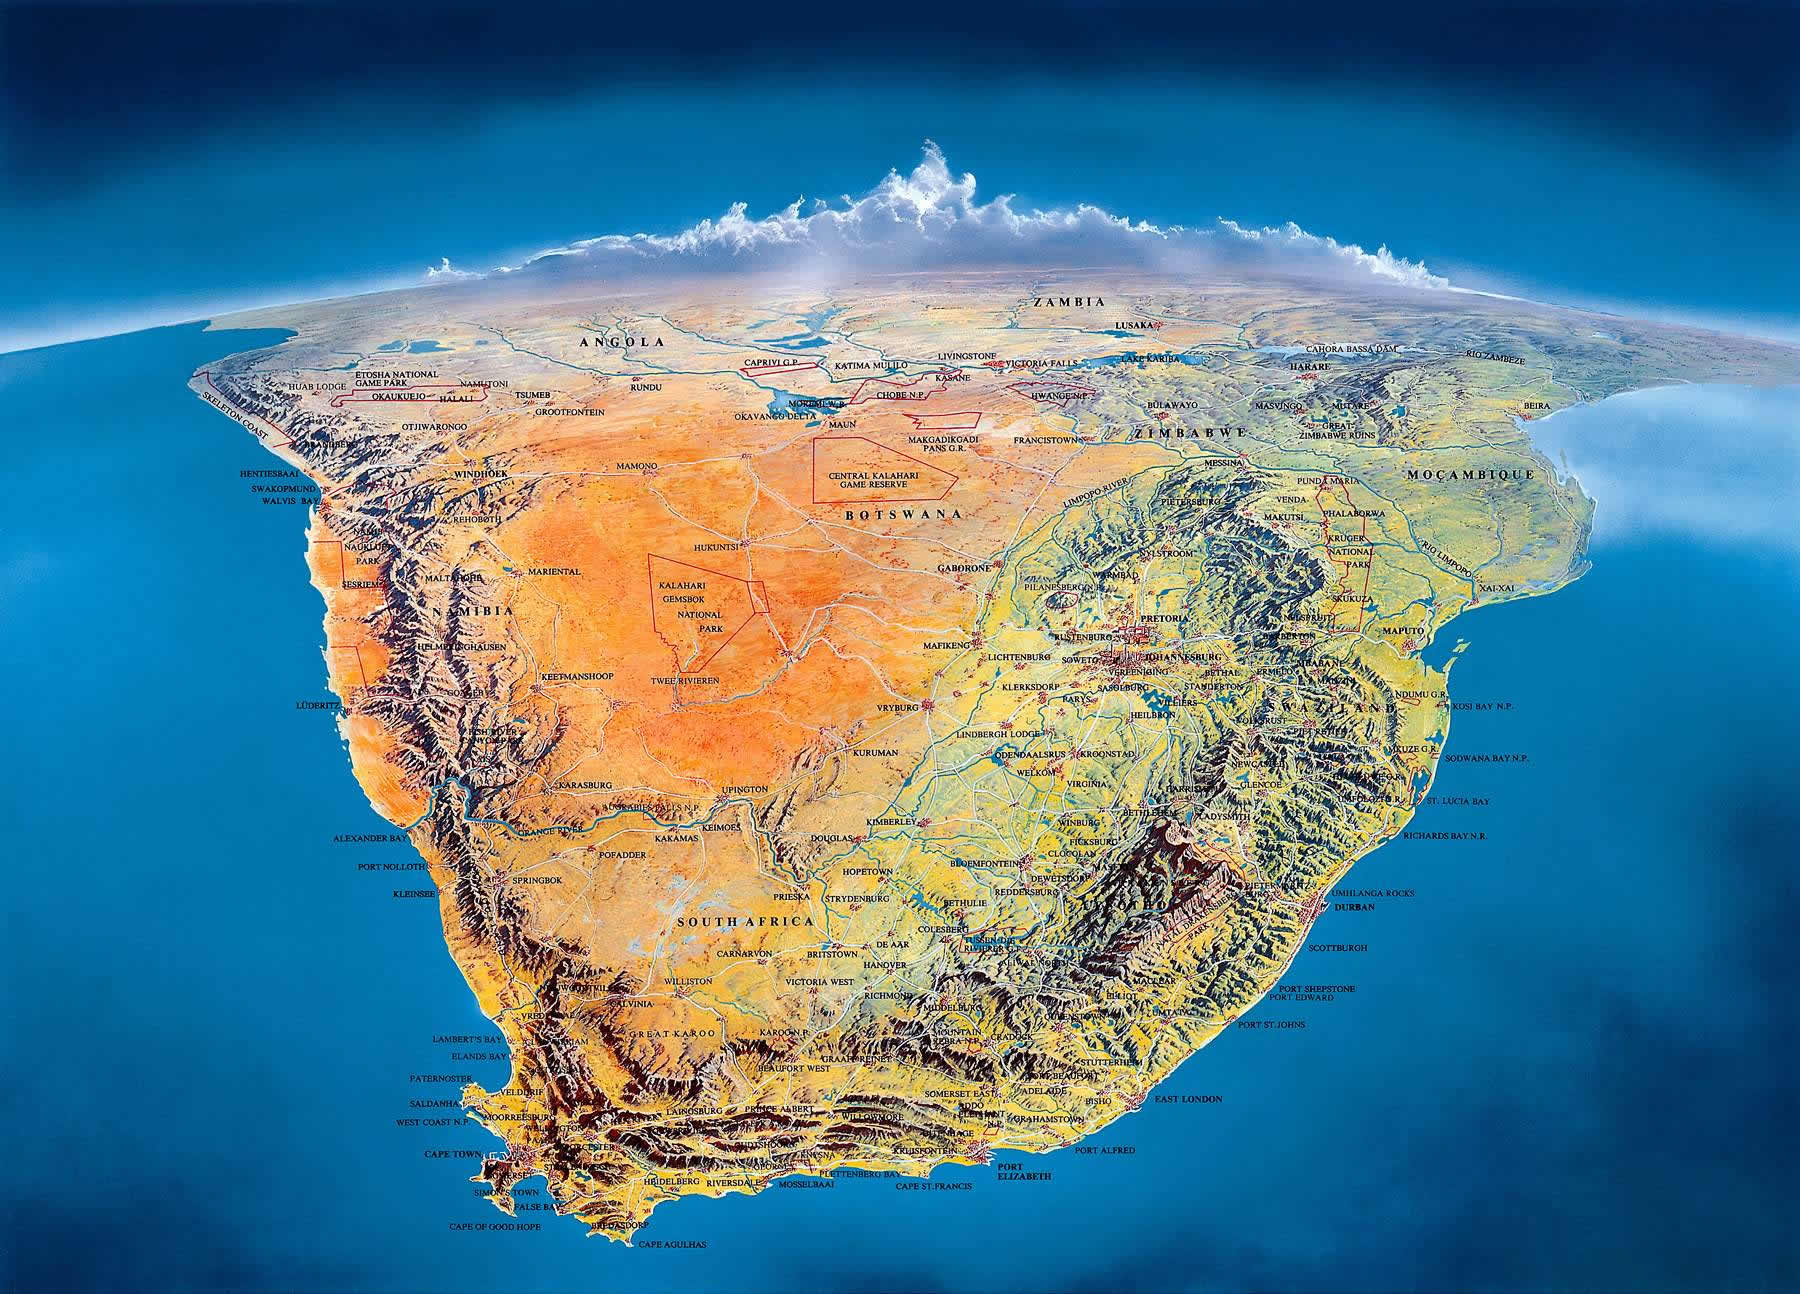 South Africa from a satellite